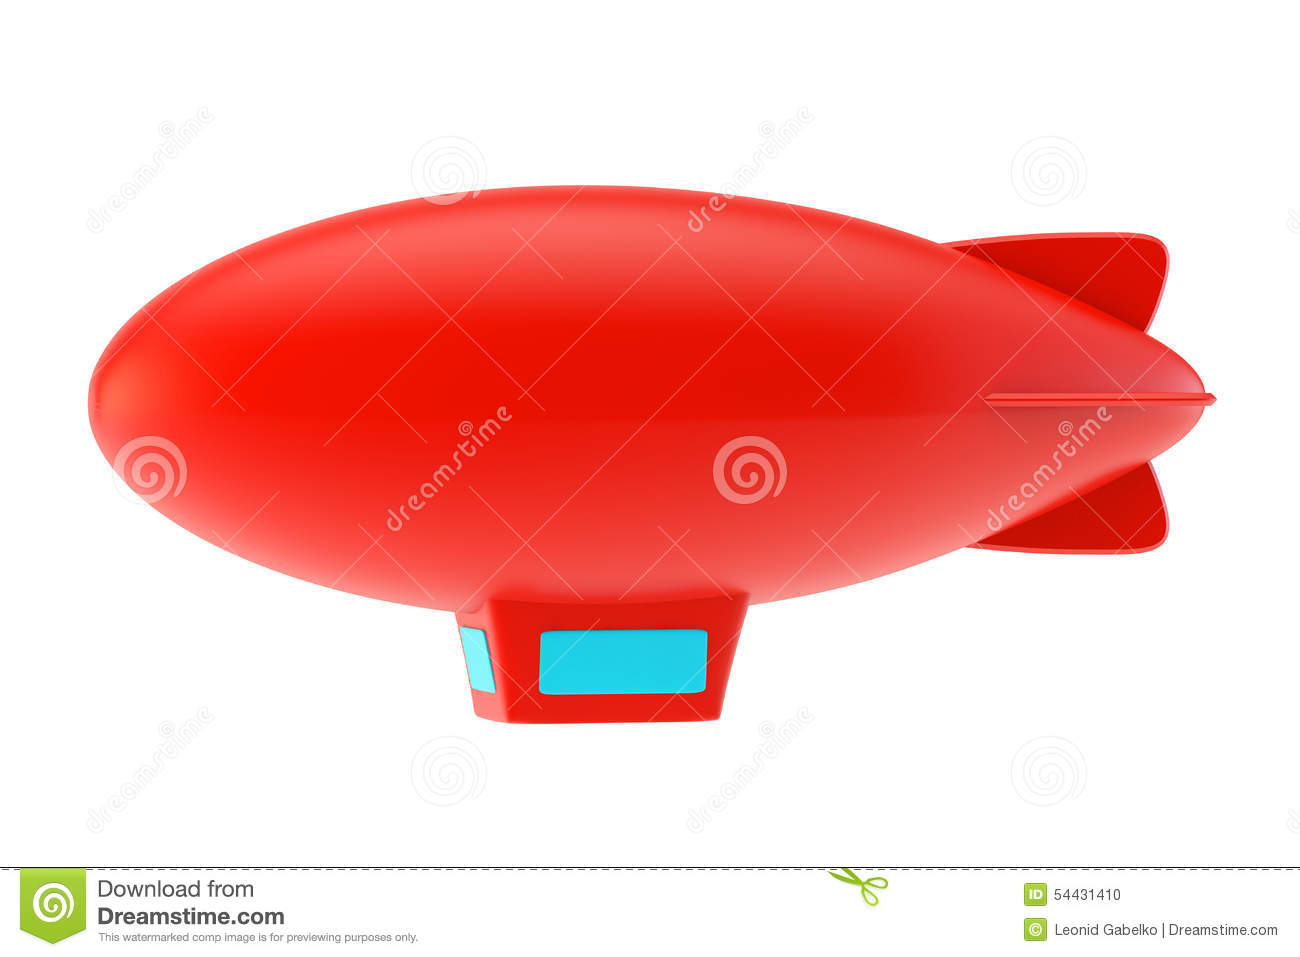 ballon dirigeable rouge